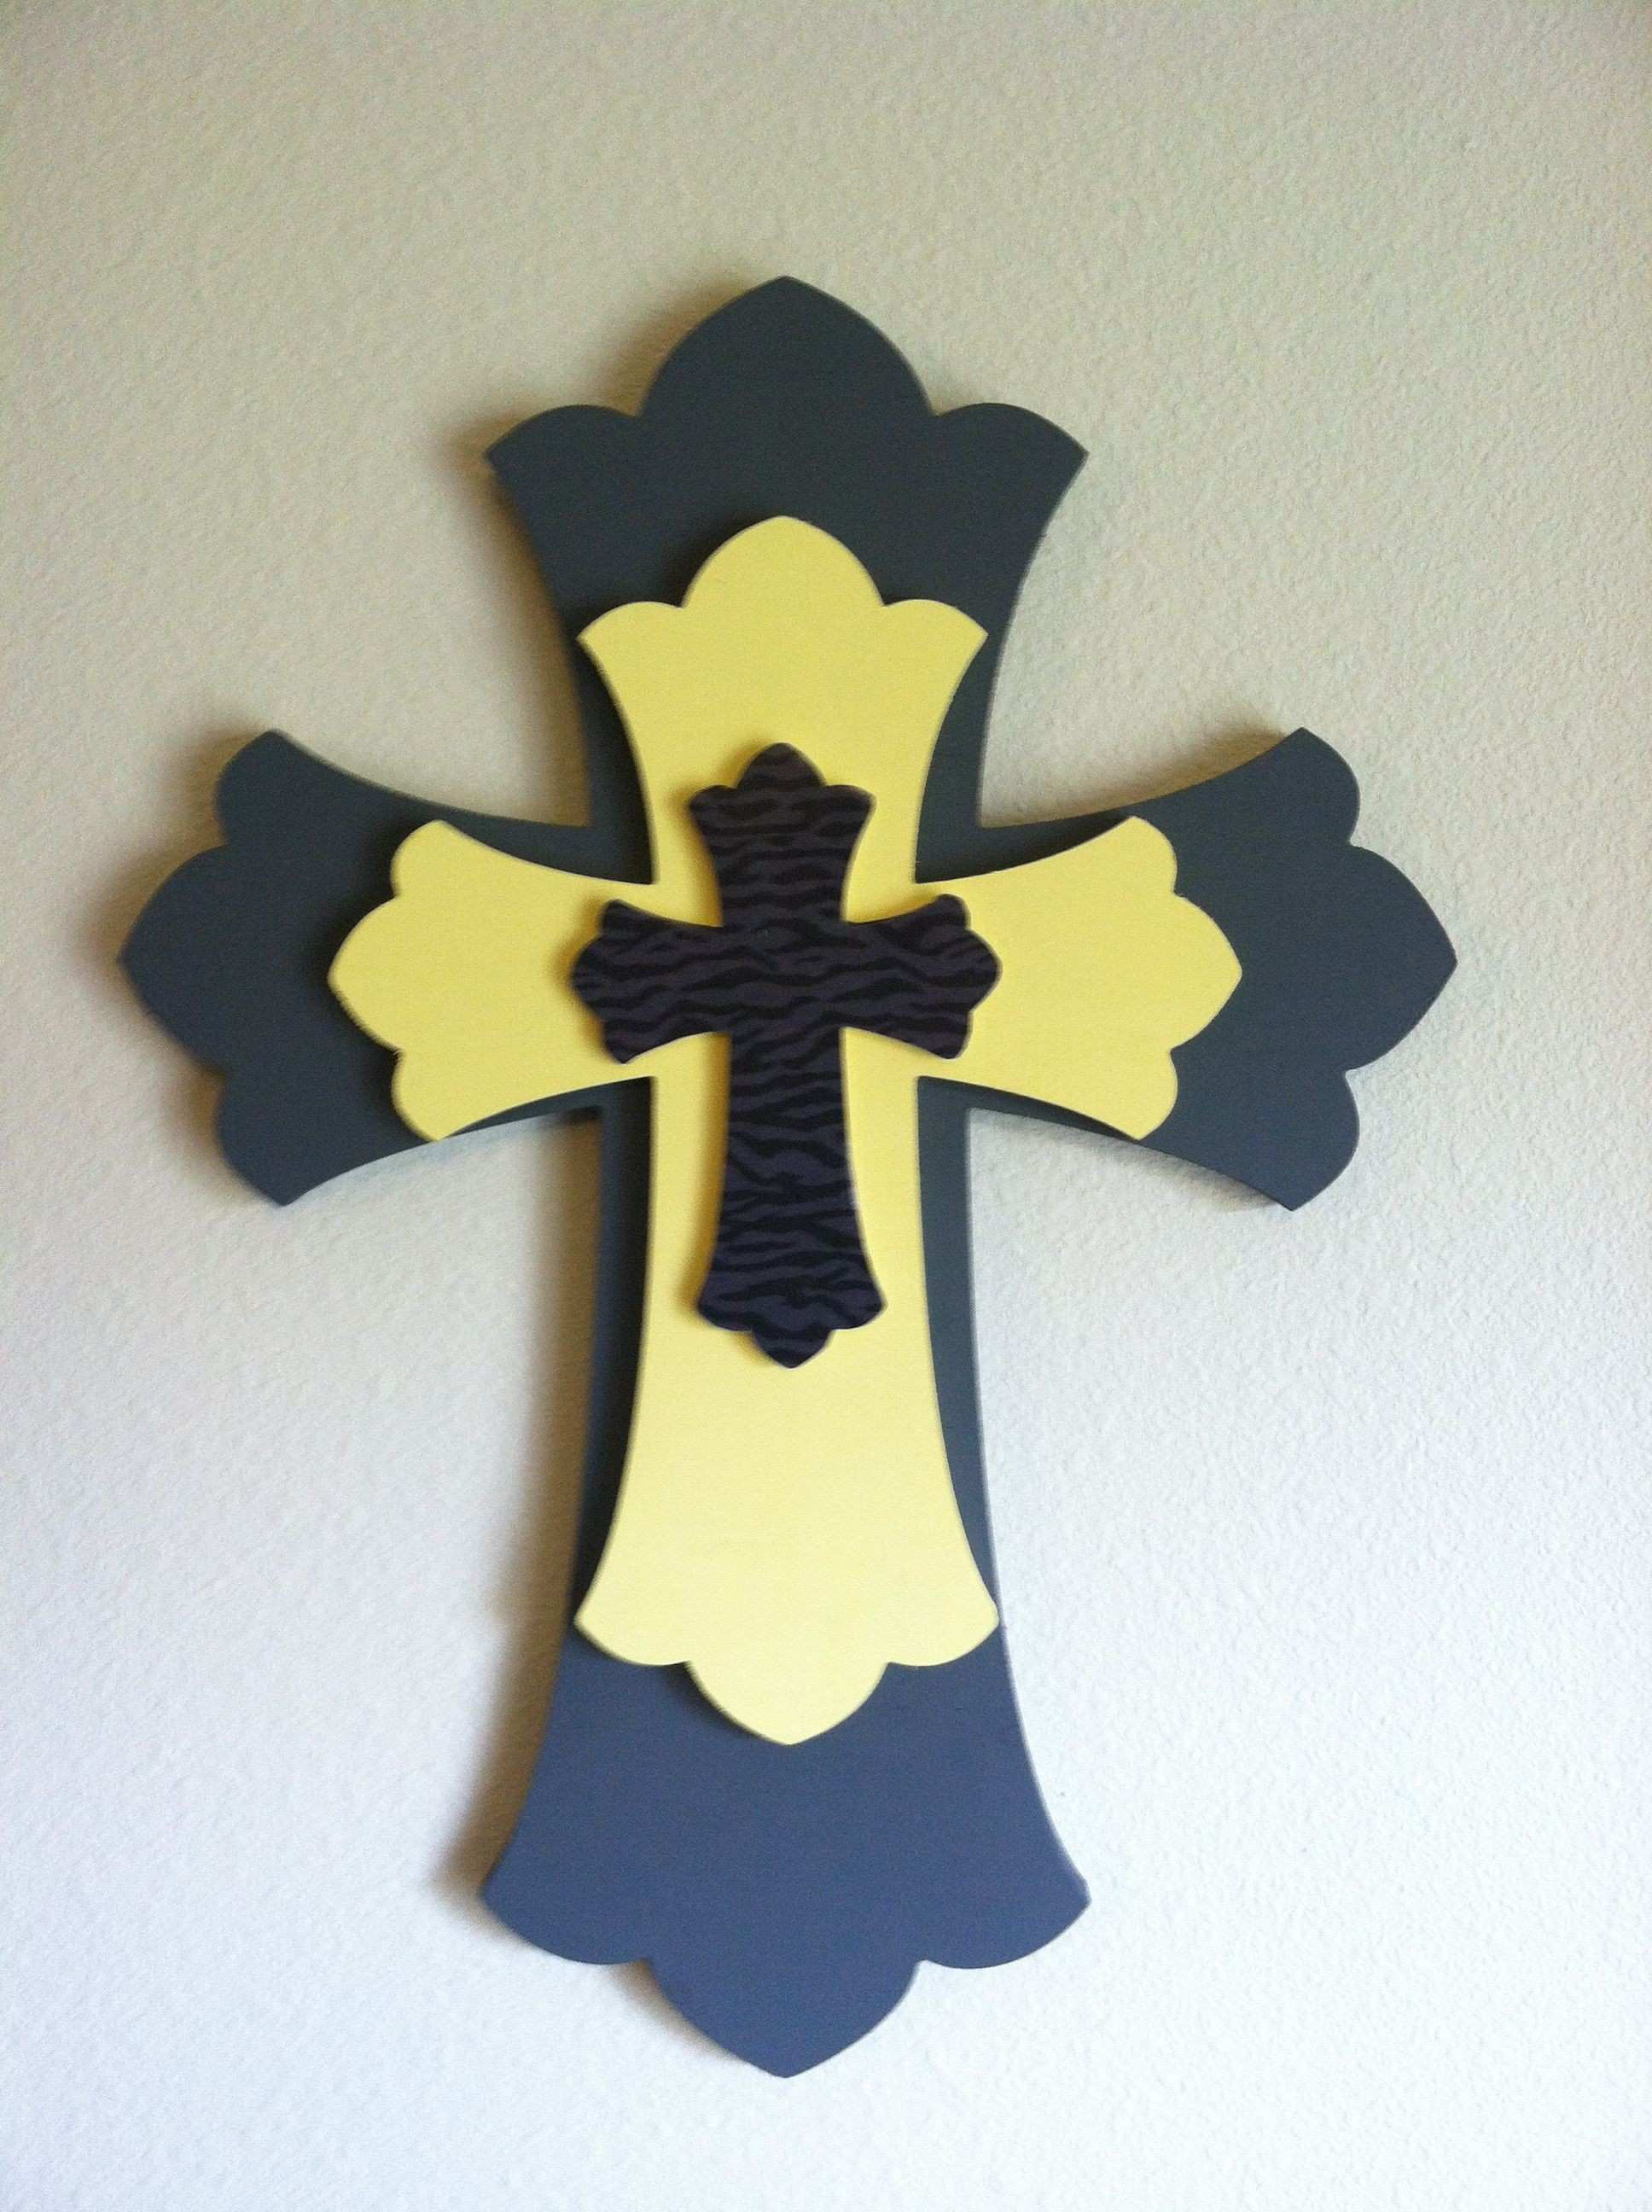 Wall Crosses Decor Luxury Diy Cross for the Home Pinterest | Wall ...